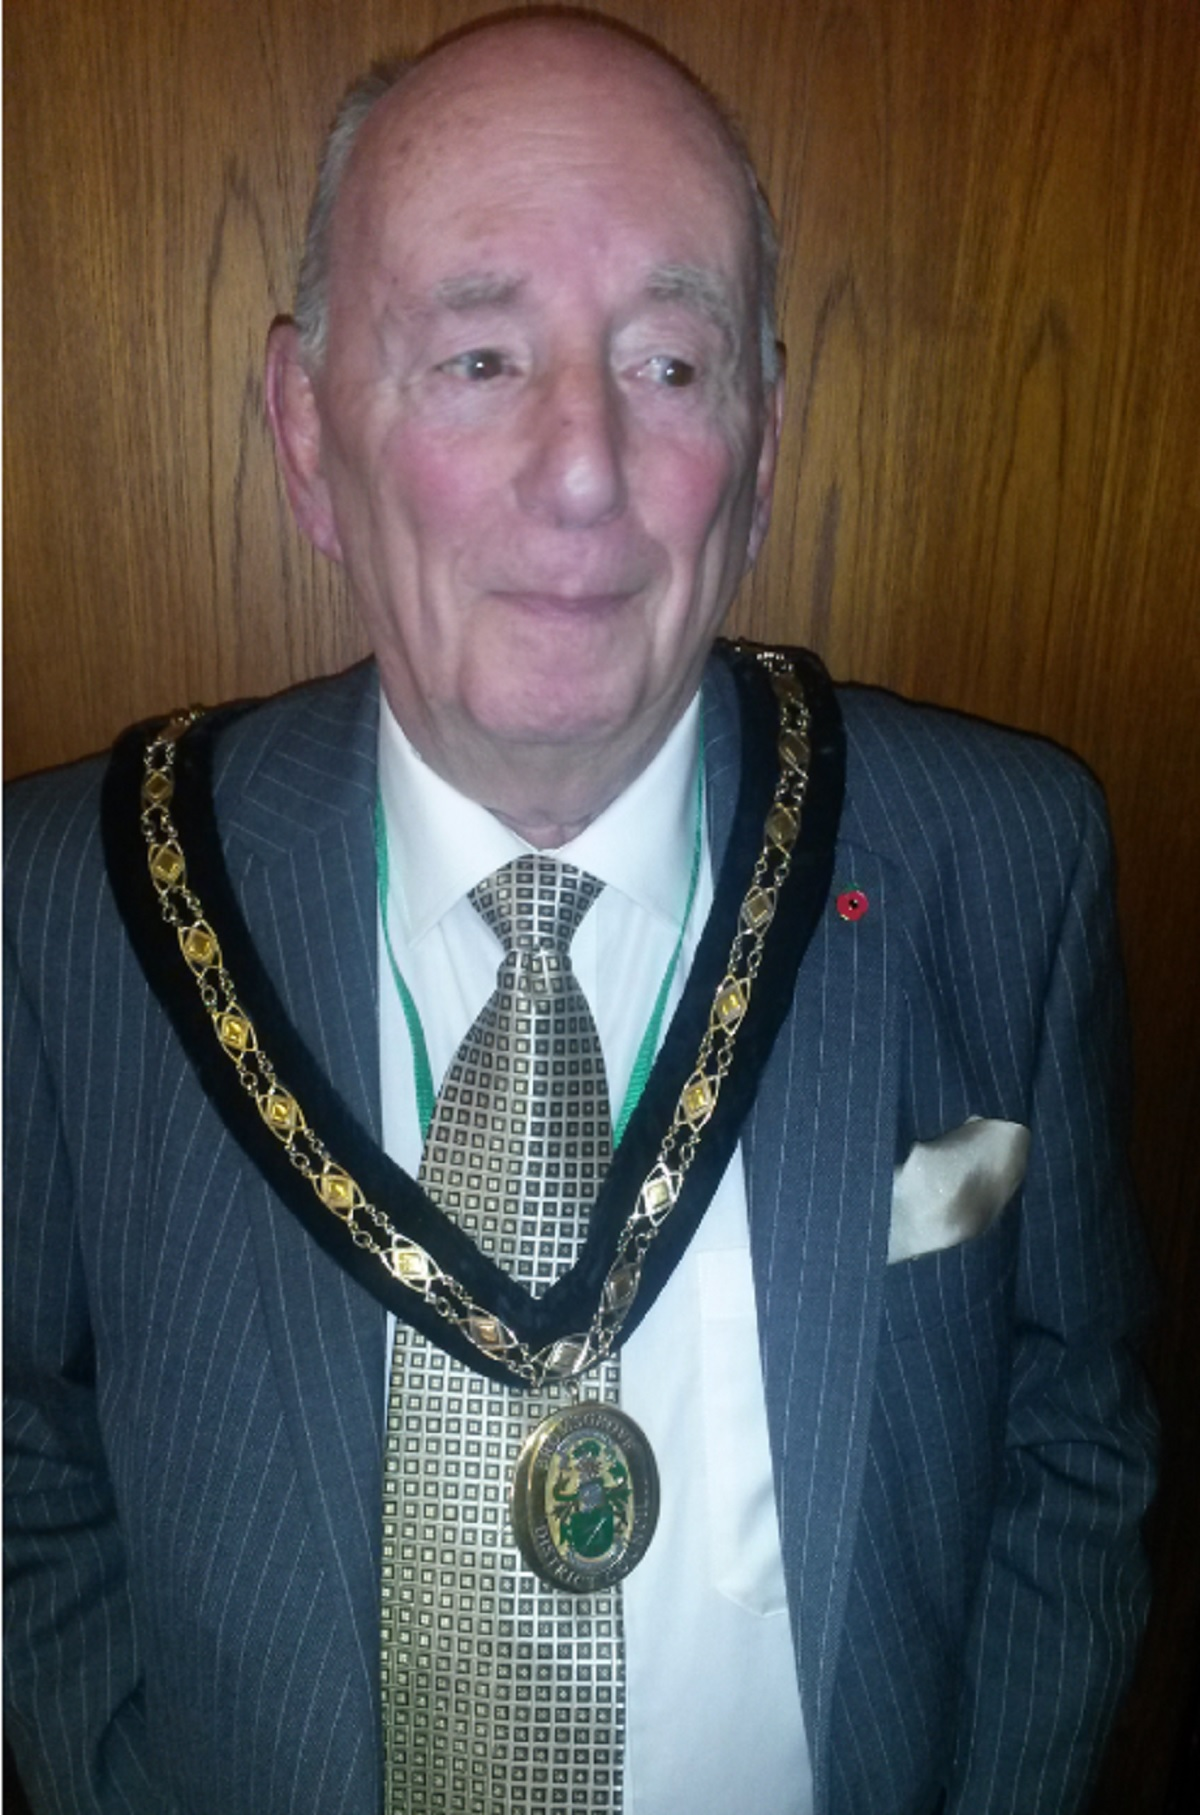 FIRST CITIZEN: John Ruck has been elected the civic head of Bromsgrove District Council. SP